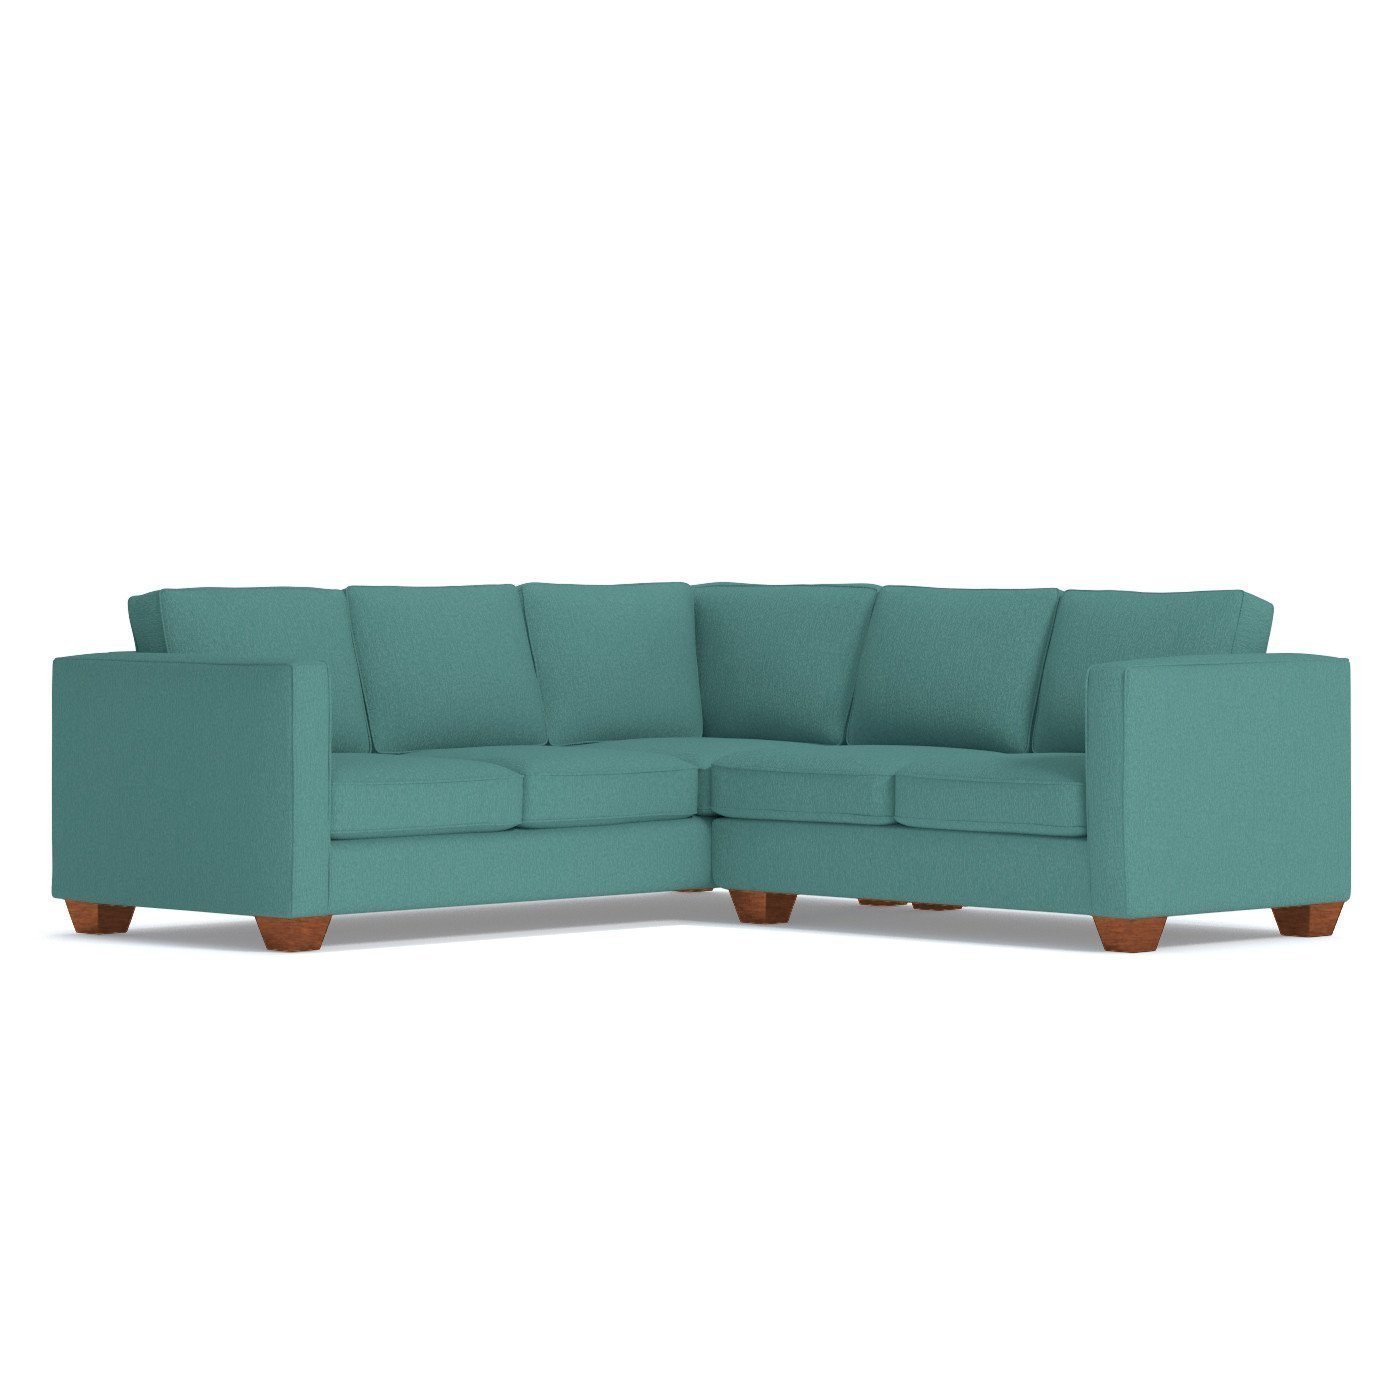 Amazon.com: Catalina 2-Piece L-Sectional Sofa, Seafoam ...